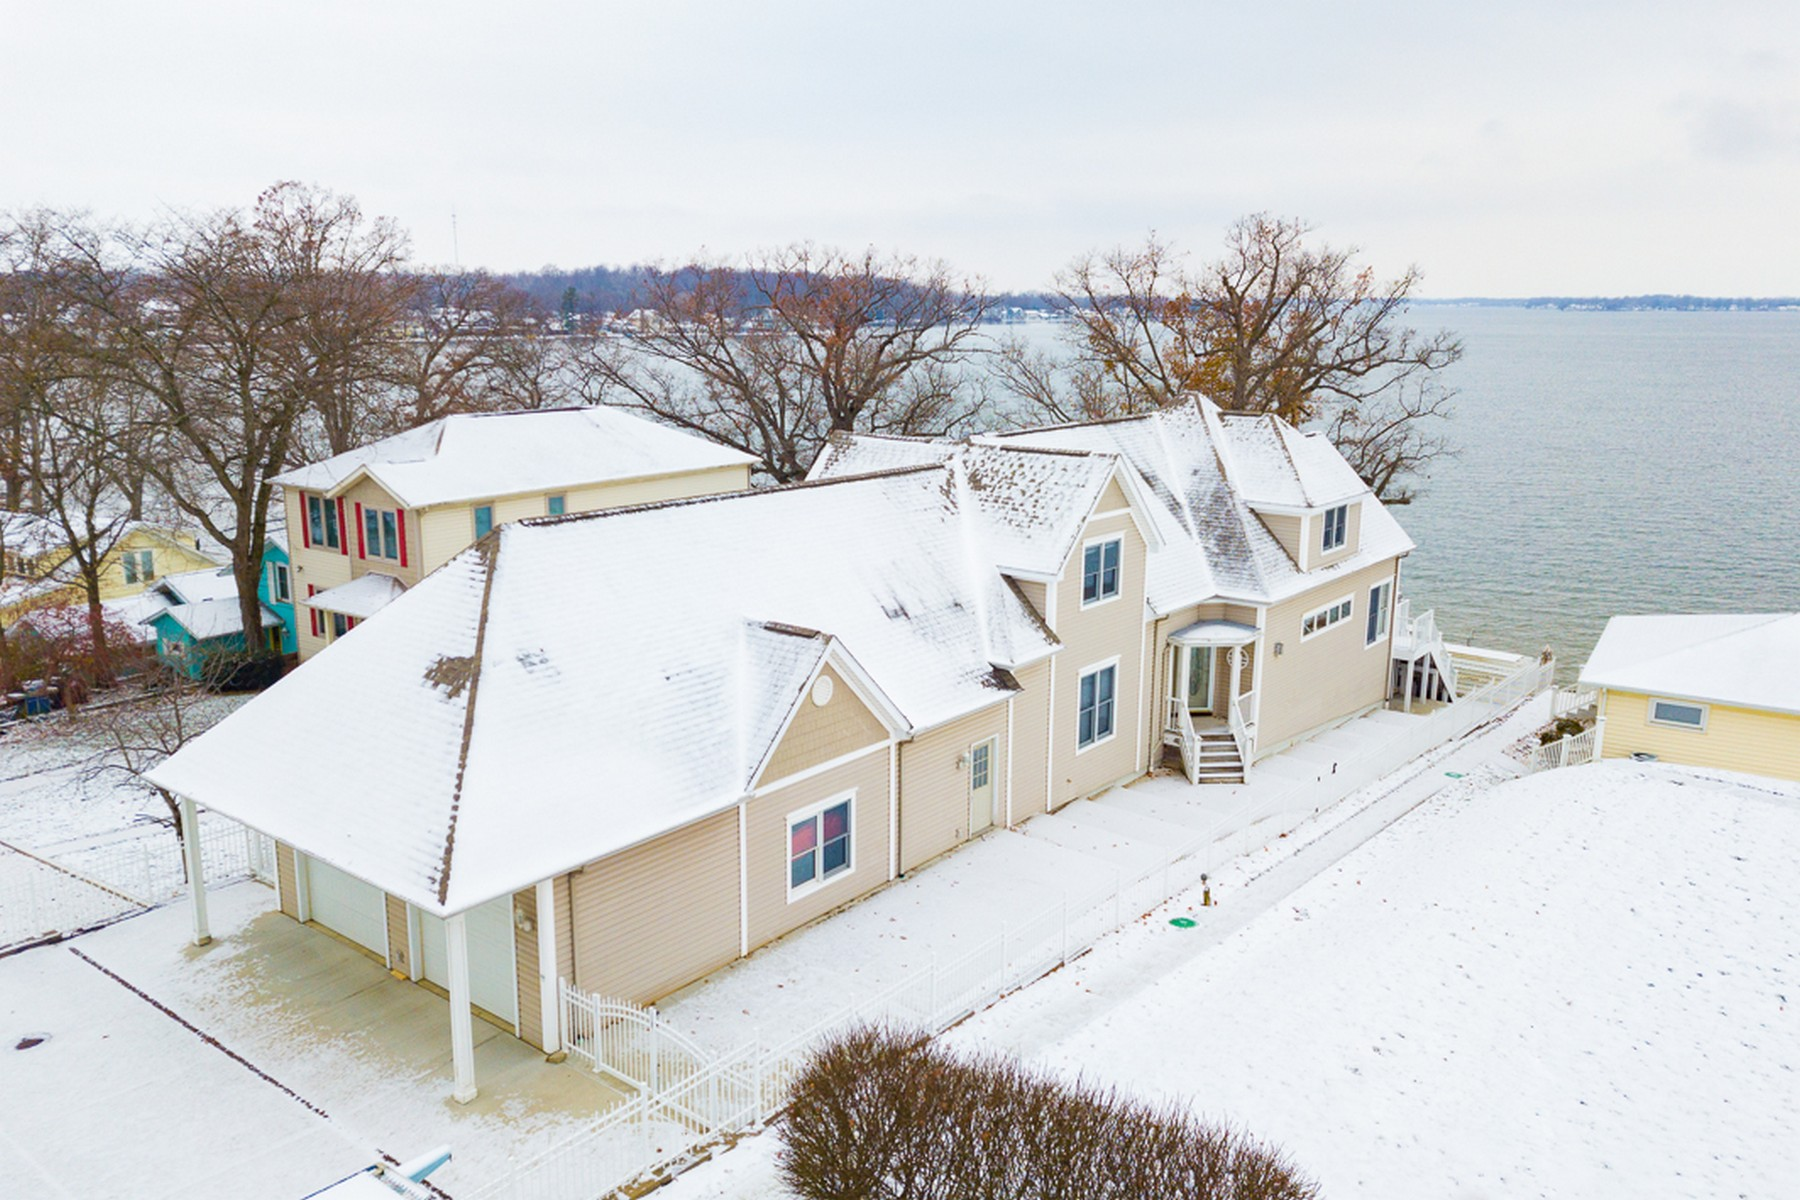 Single Family Homes for Active at 57' of Frontage on Lake Wawasee 8894 E Hatchery Road Syracuse, Indiana 46567 United States